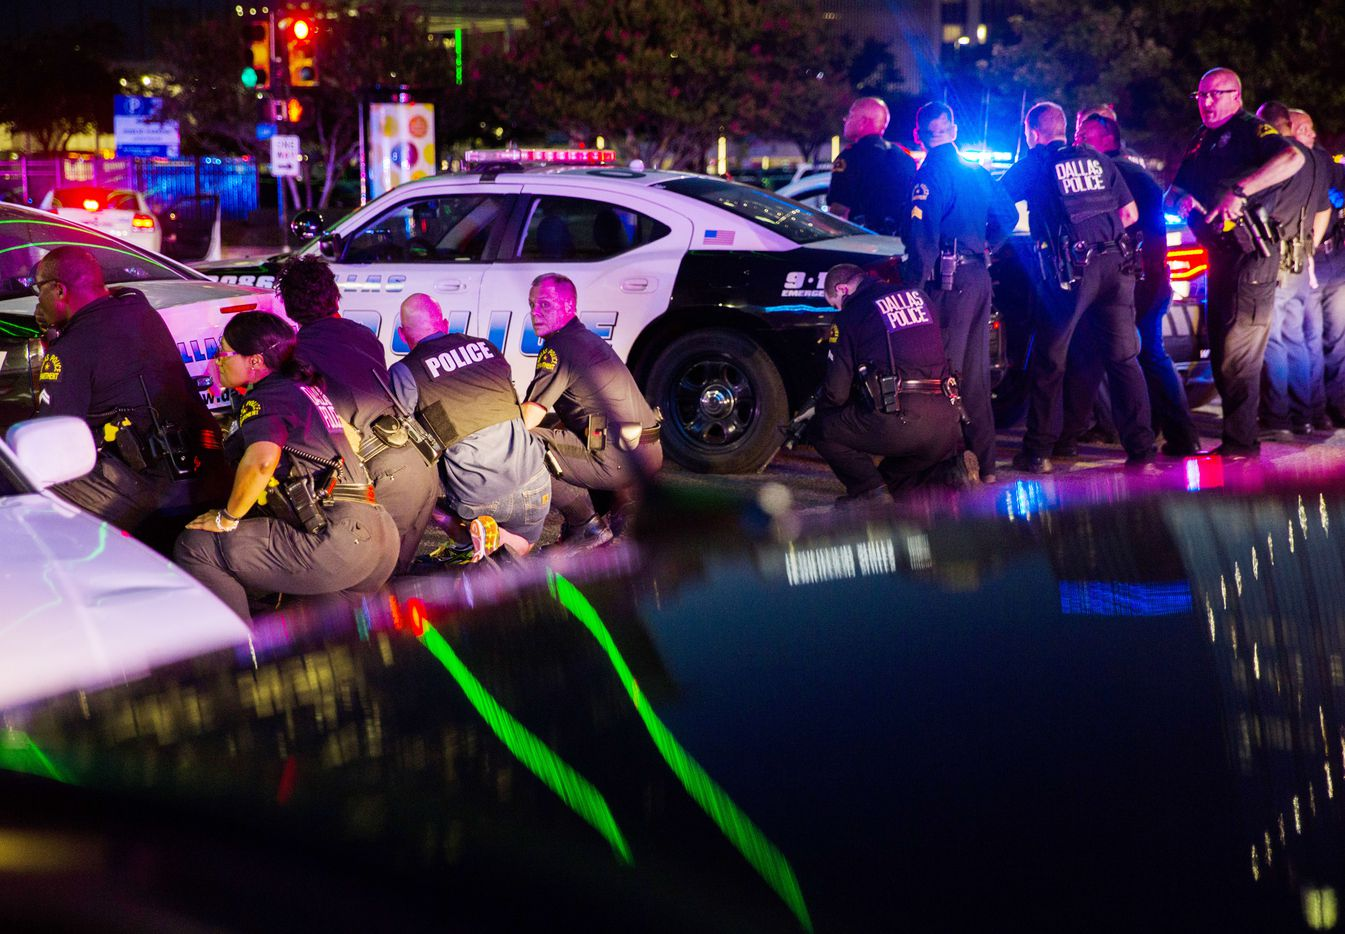 At 9:07 p.m., Dallas officers took cover behind police vehicles at the intersection of South Lamar and Jackson streets as the attack continued.